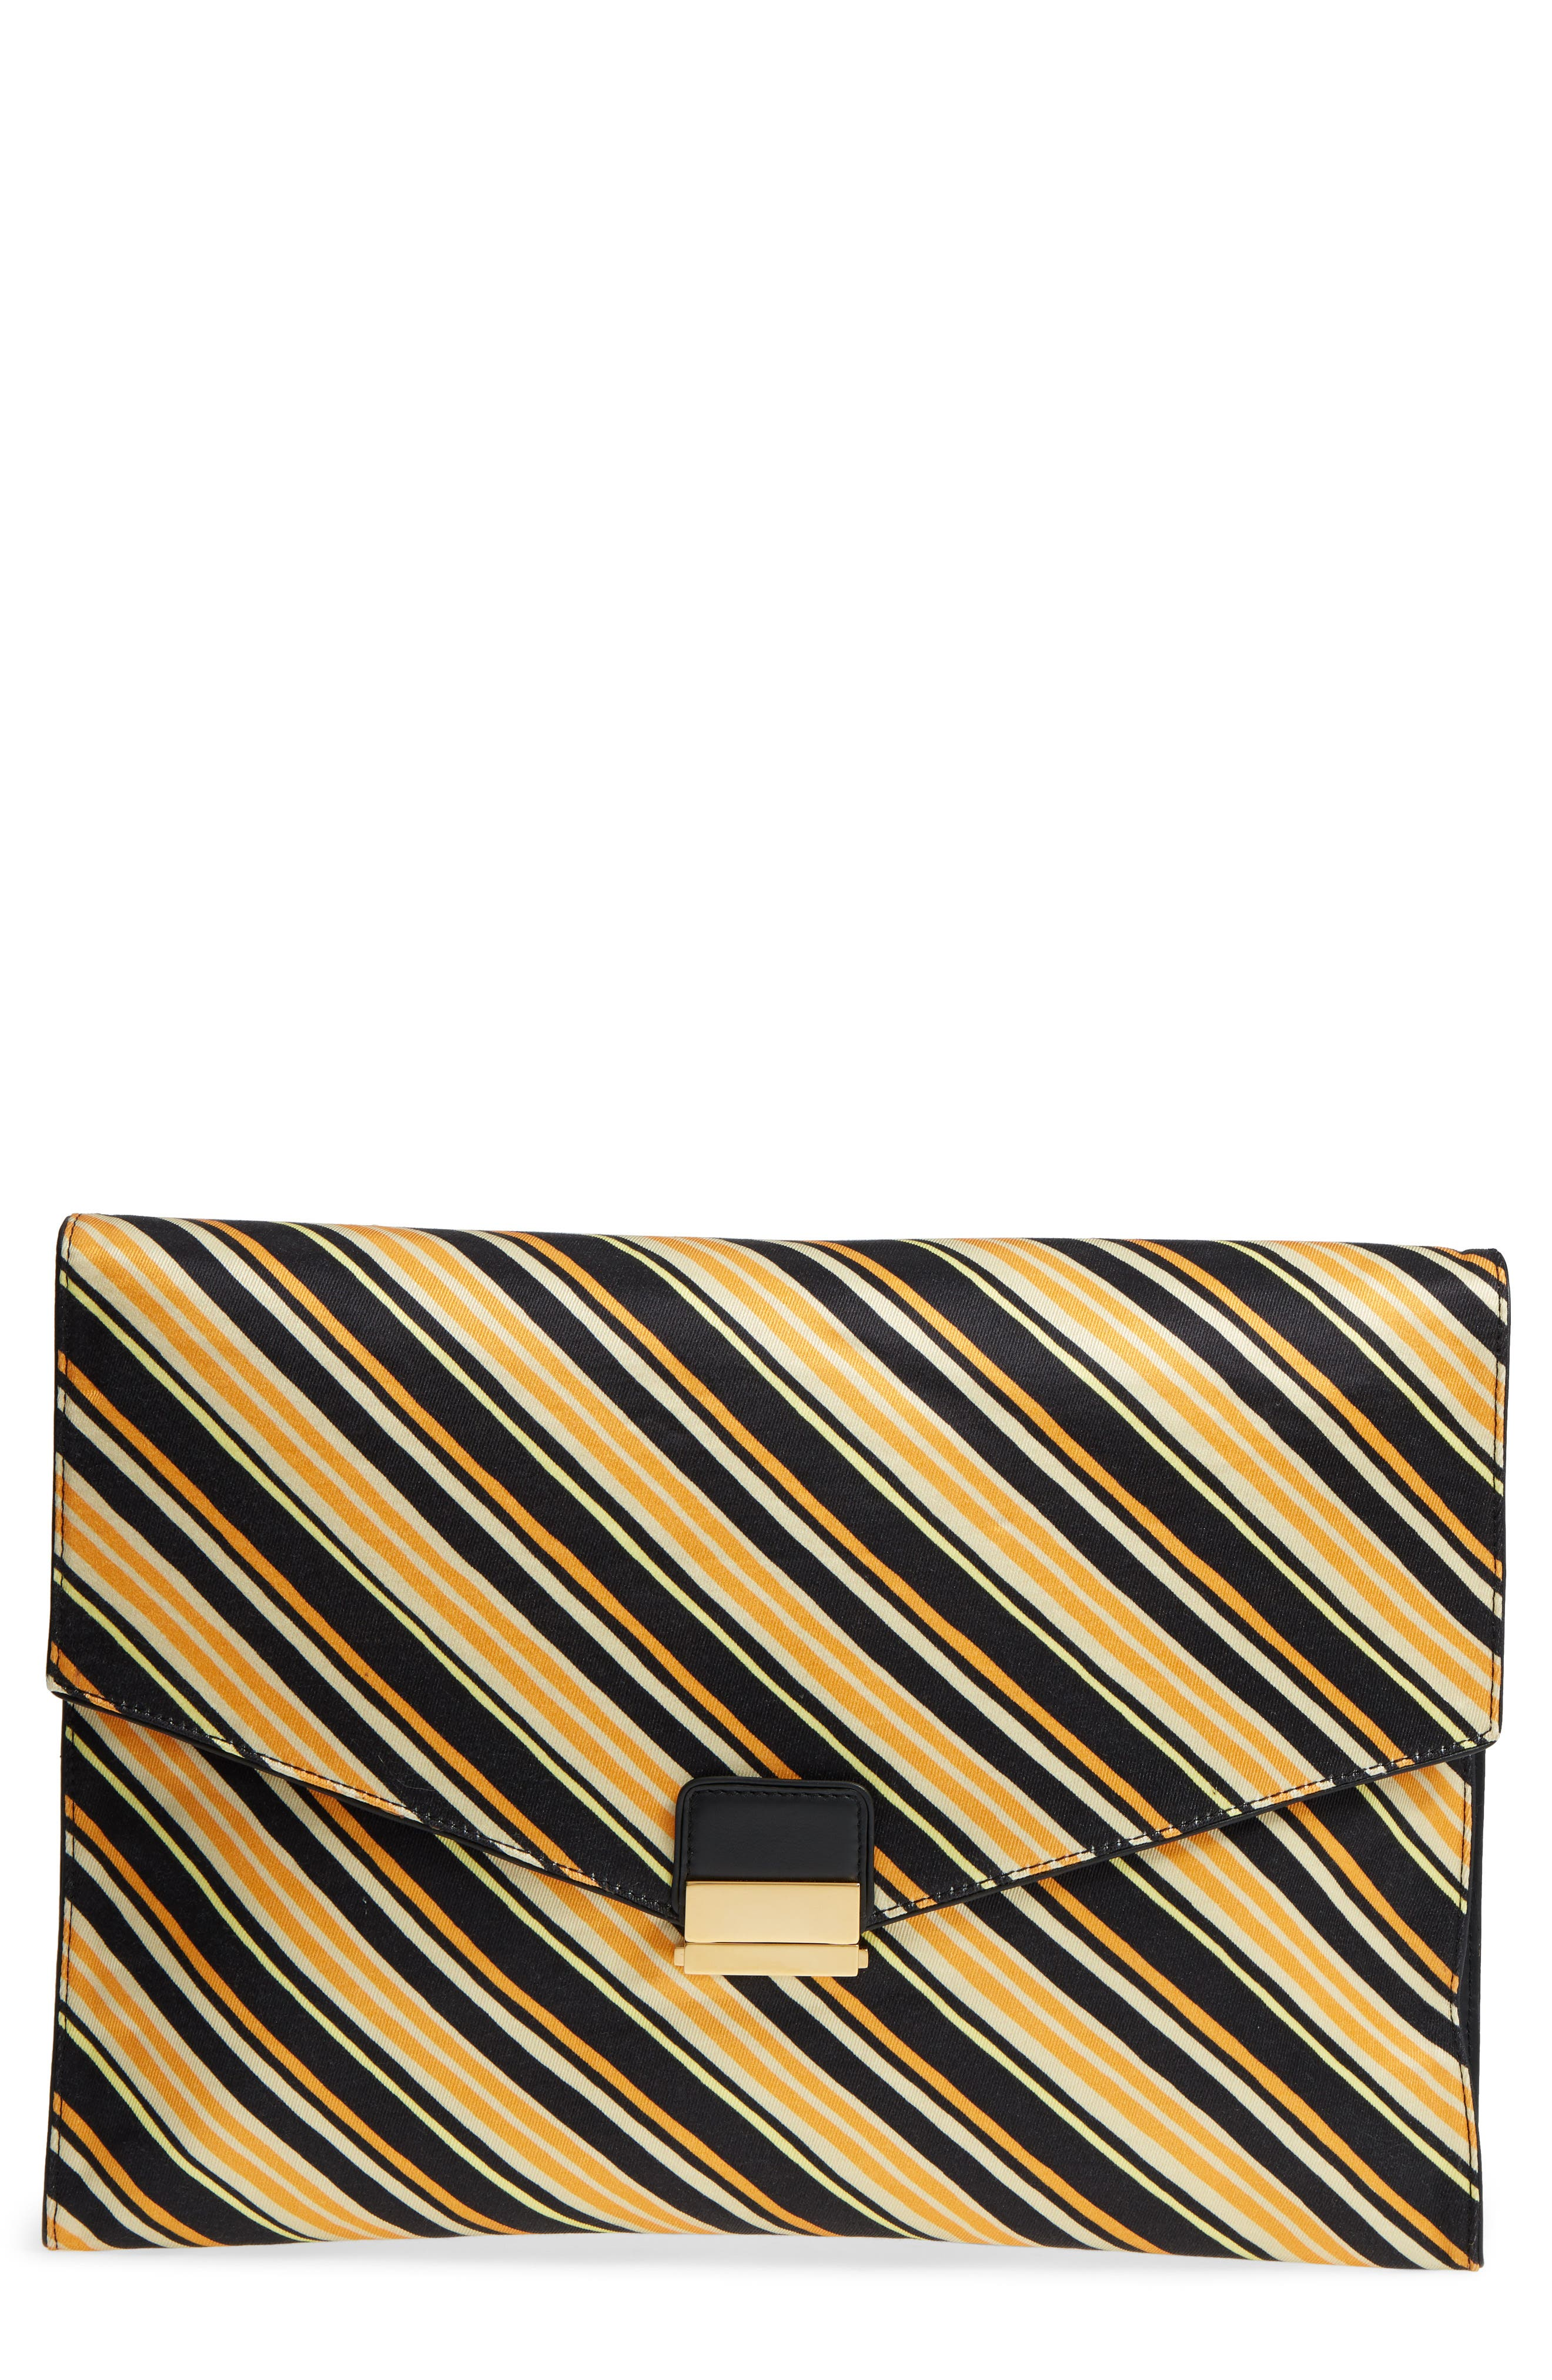 DRIES VAN NOTEN Stripe Canvas Large Canvas Envelope Clutch, Main, color, 001